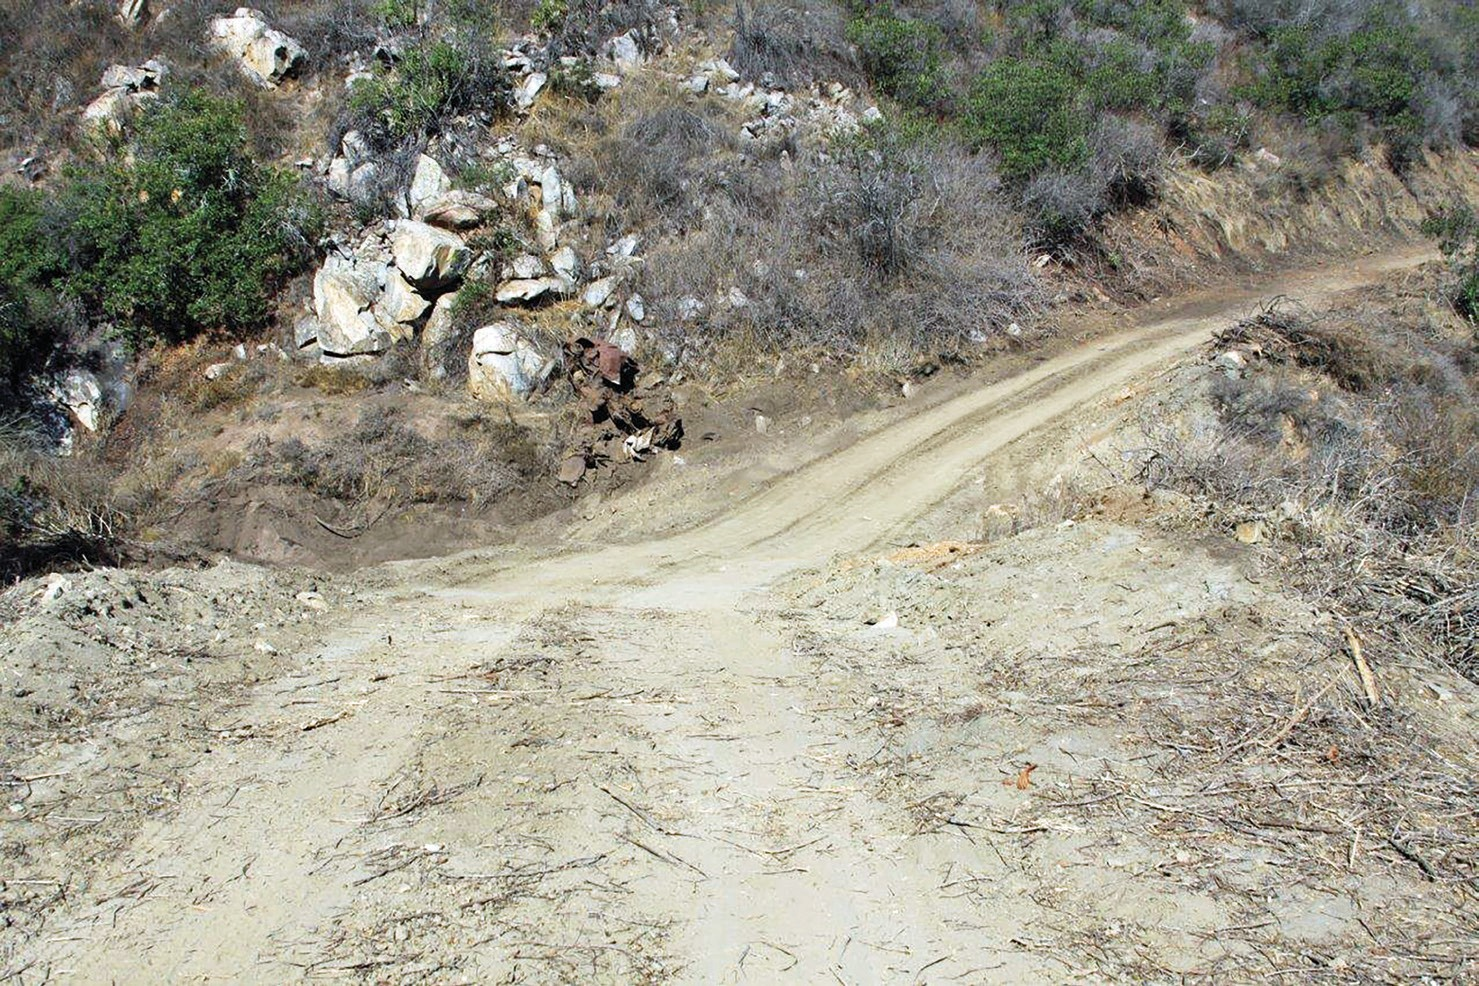 This ravine on Merriam Mountains is passable after CAL FIRE crews installed a culvert to bridge an impassable gap that forced emergency vehicles to take a detour during fires and emergency calls.